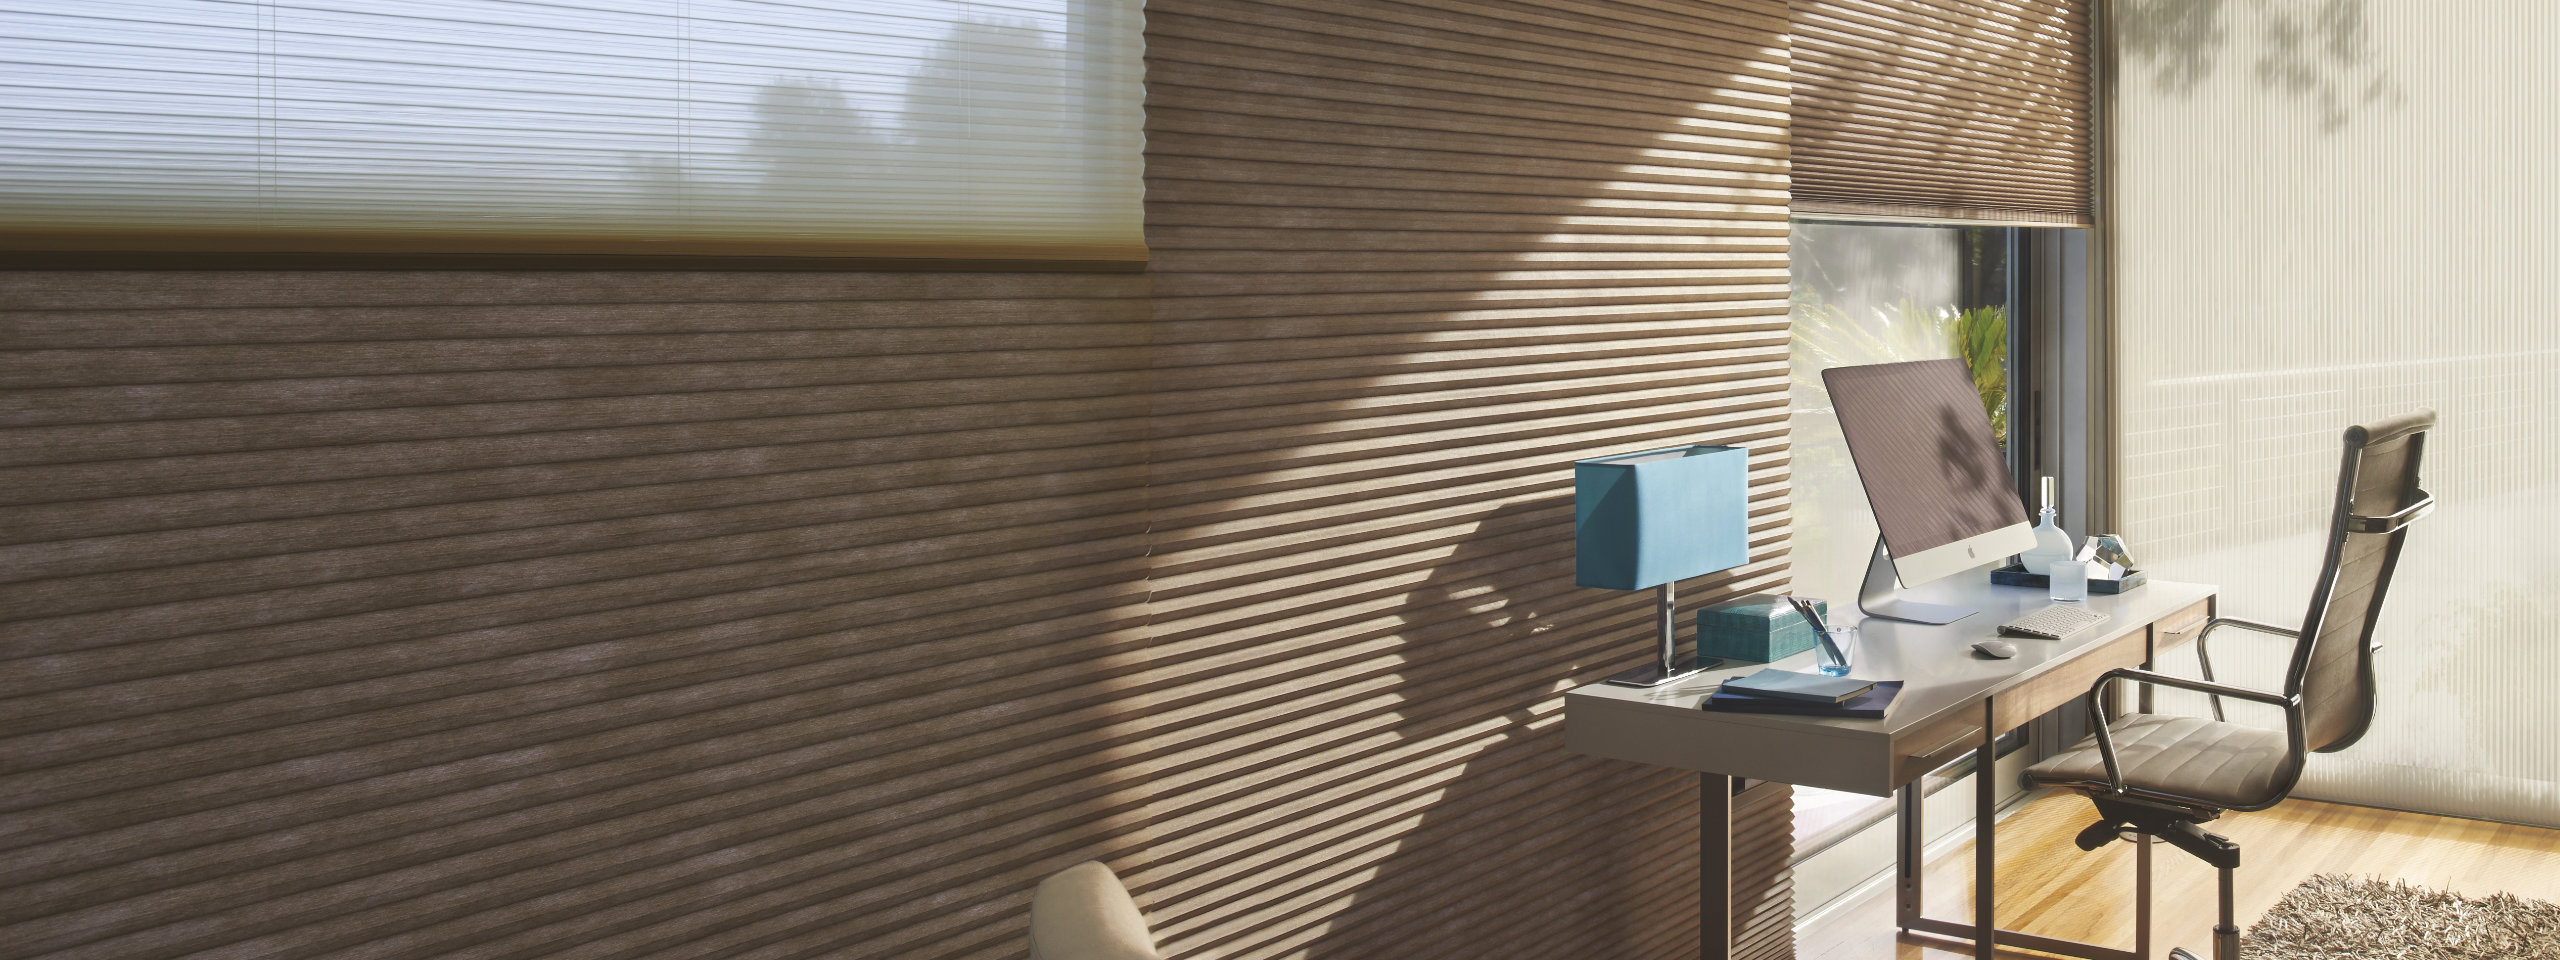 Hunter Douglas Cellular Shades in the Office